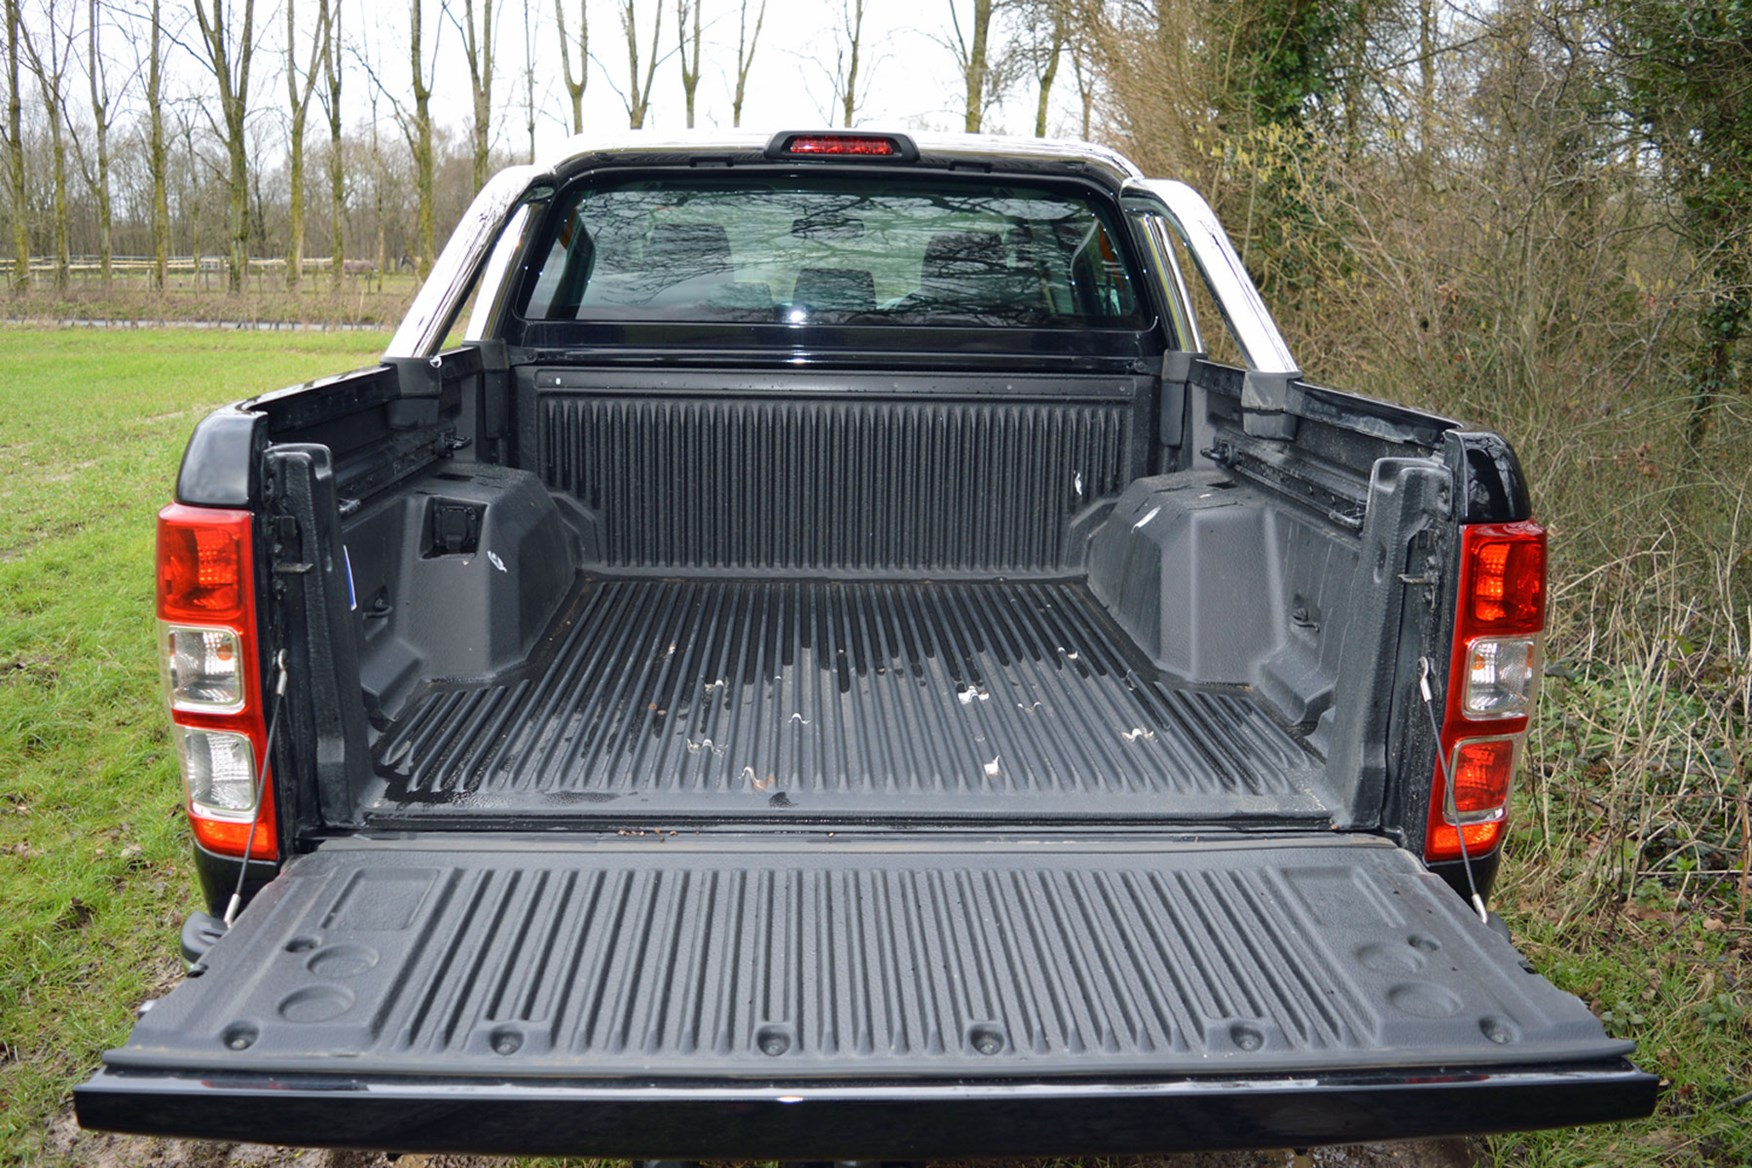 Ford Ranger Limited 3.2 Euro 5 review - load bed